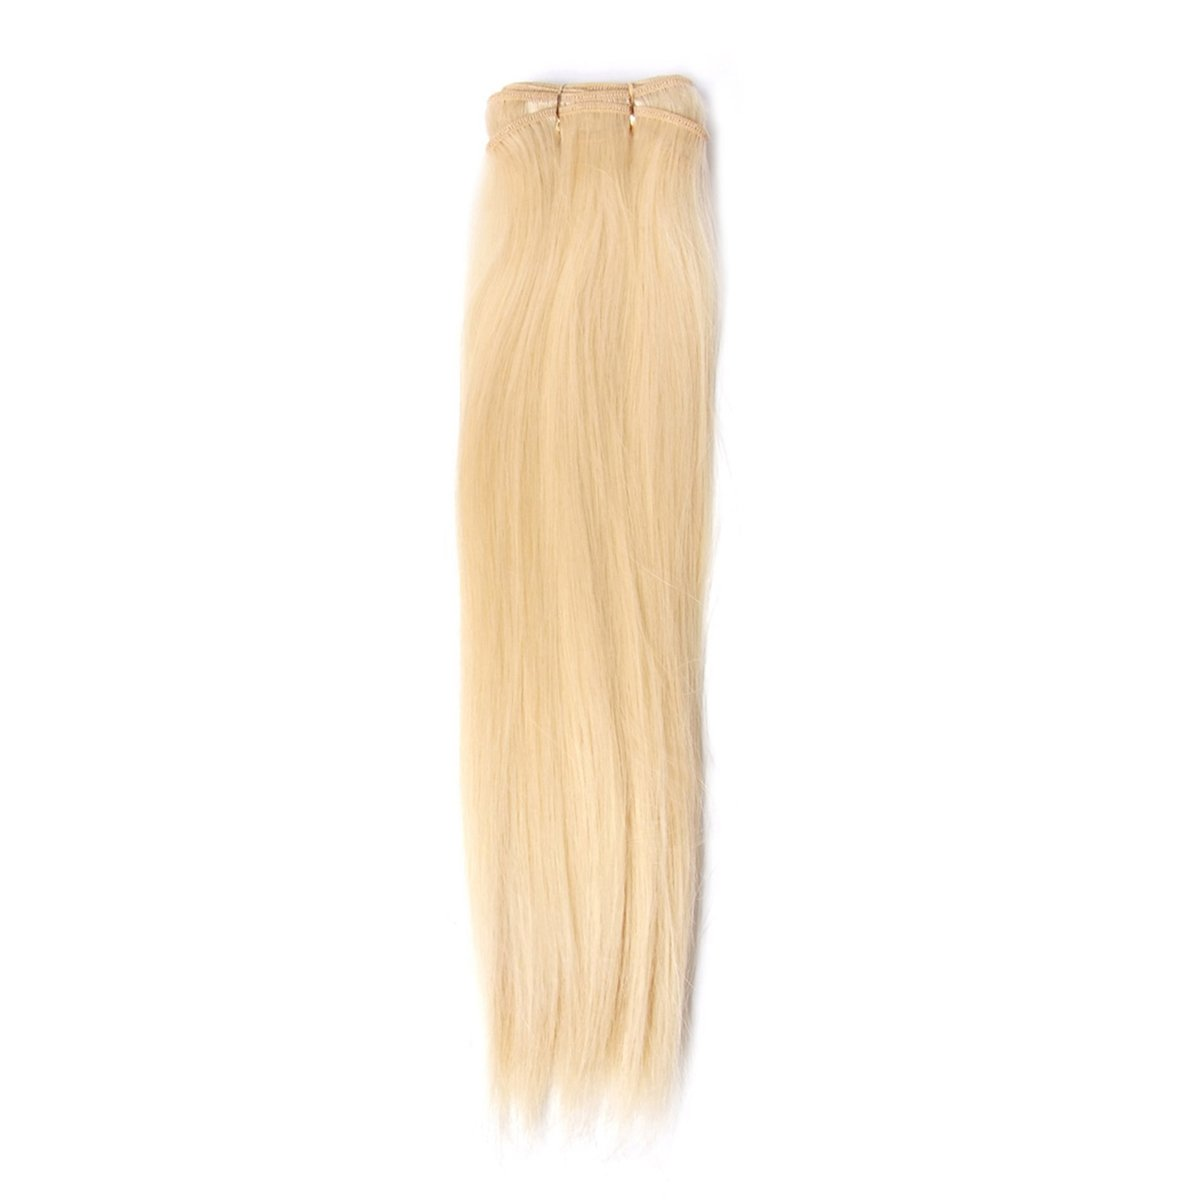 Omega St 18 Remy Human Hair Extension Ebeautymall